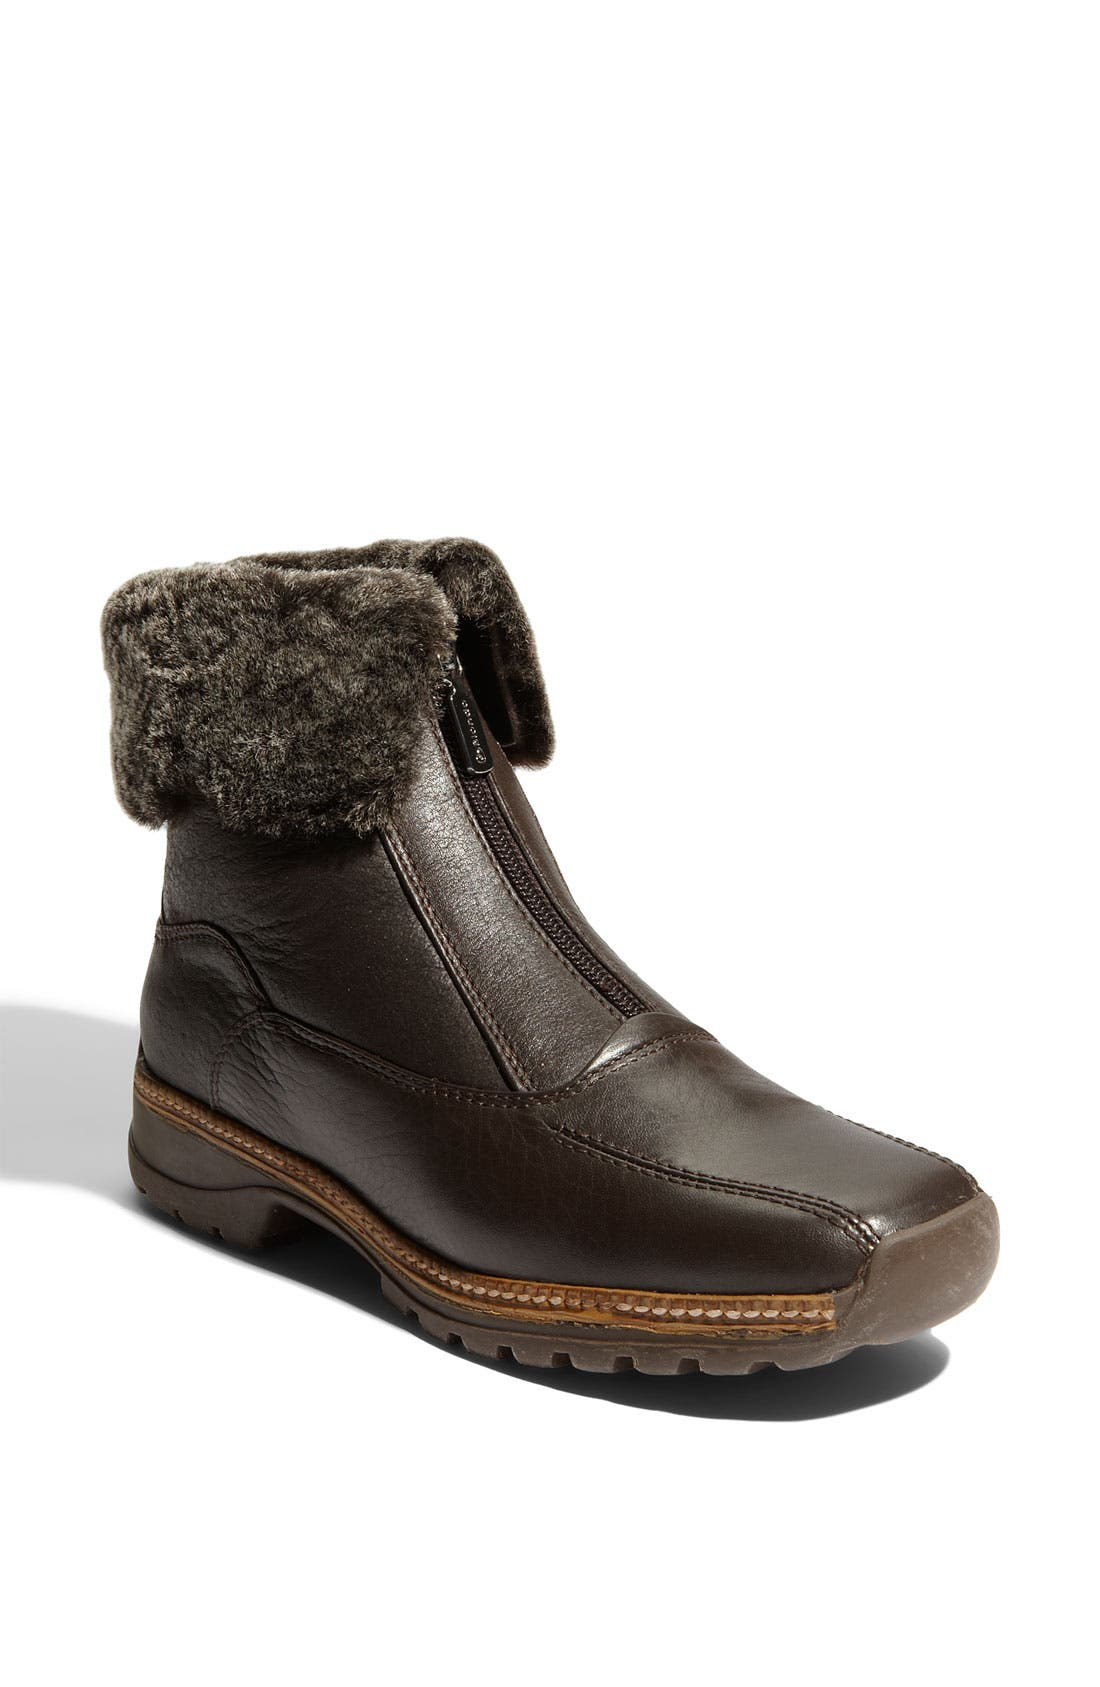 Alternate Image 1 Selected - Blondo 'Nourlat' Waterproof Boot